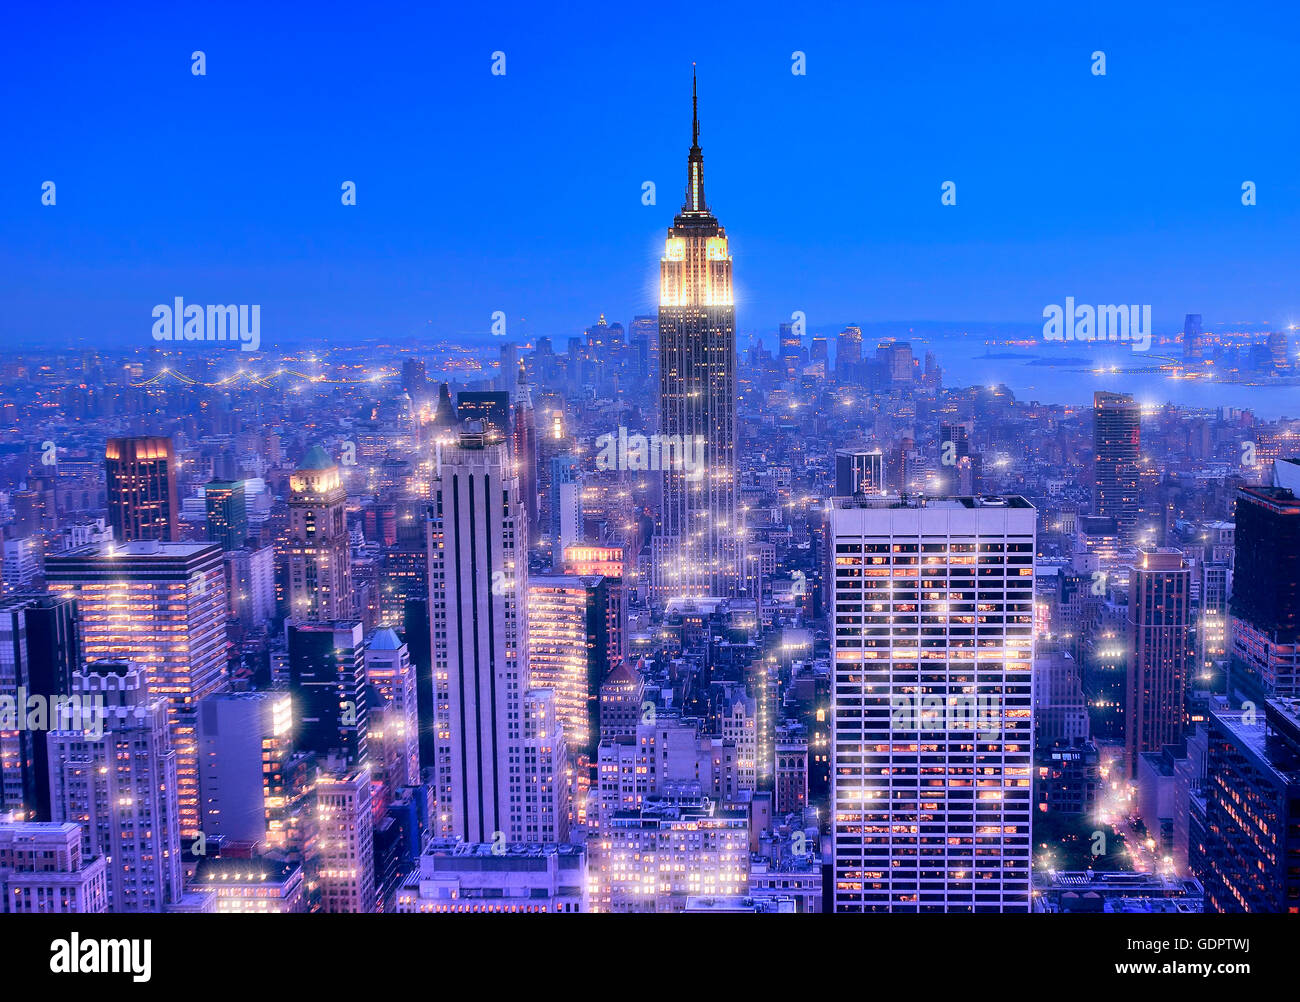 Manhattan skyline at night in New York city - Stock Image